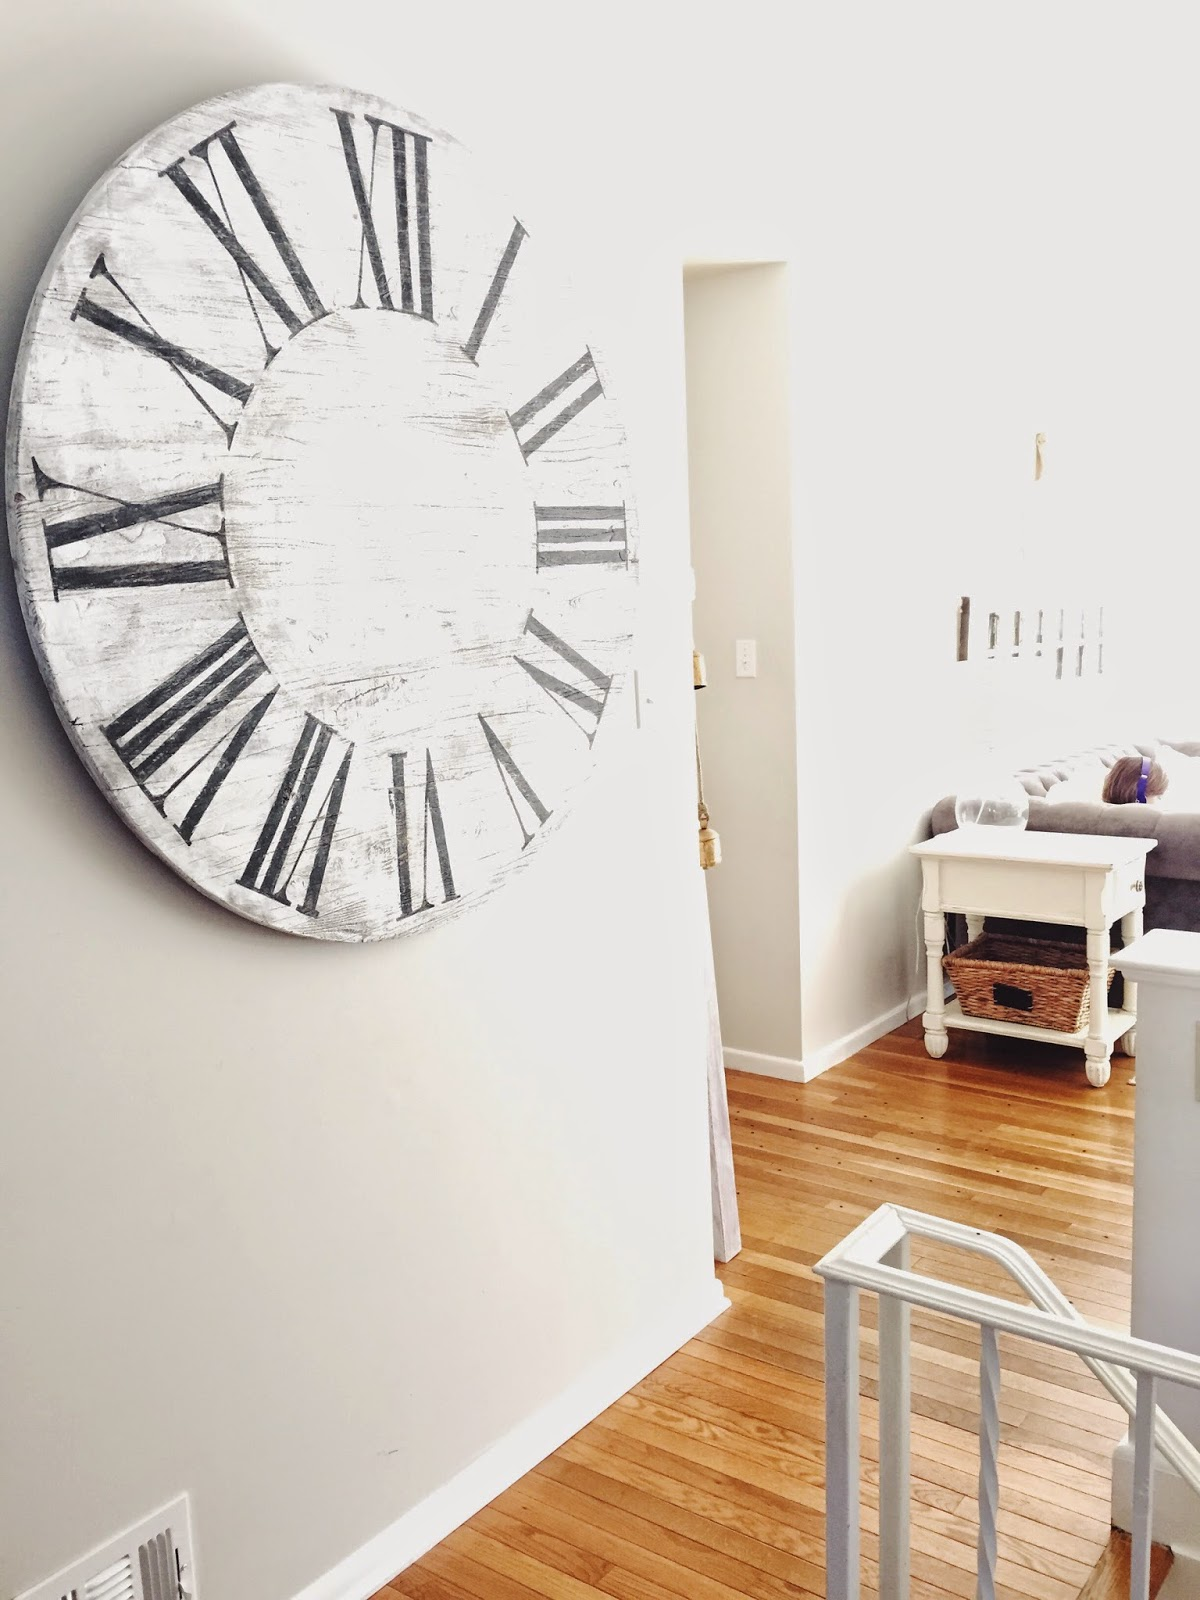 Caught in grace giant wall clock diy i know there are clock kits you can buy to turn it into a real working clock but im kinda loving it the way it is right now amipublicfo Gallery